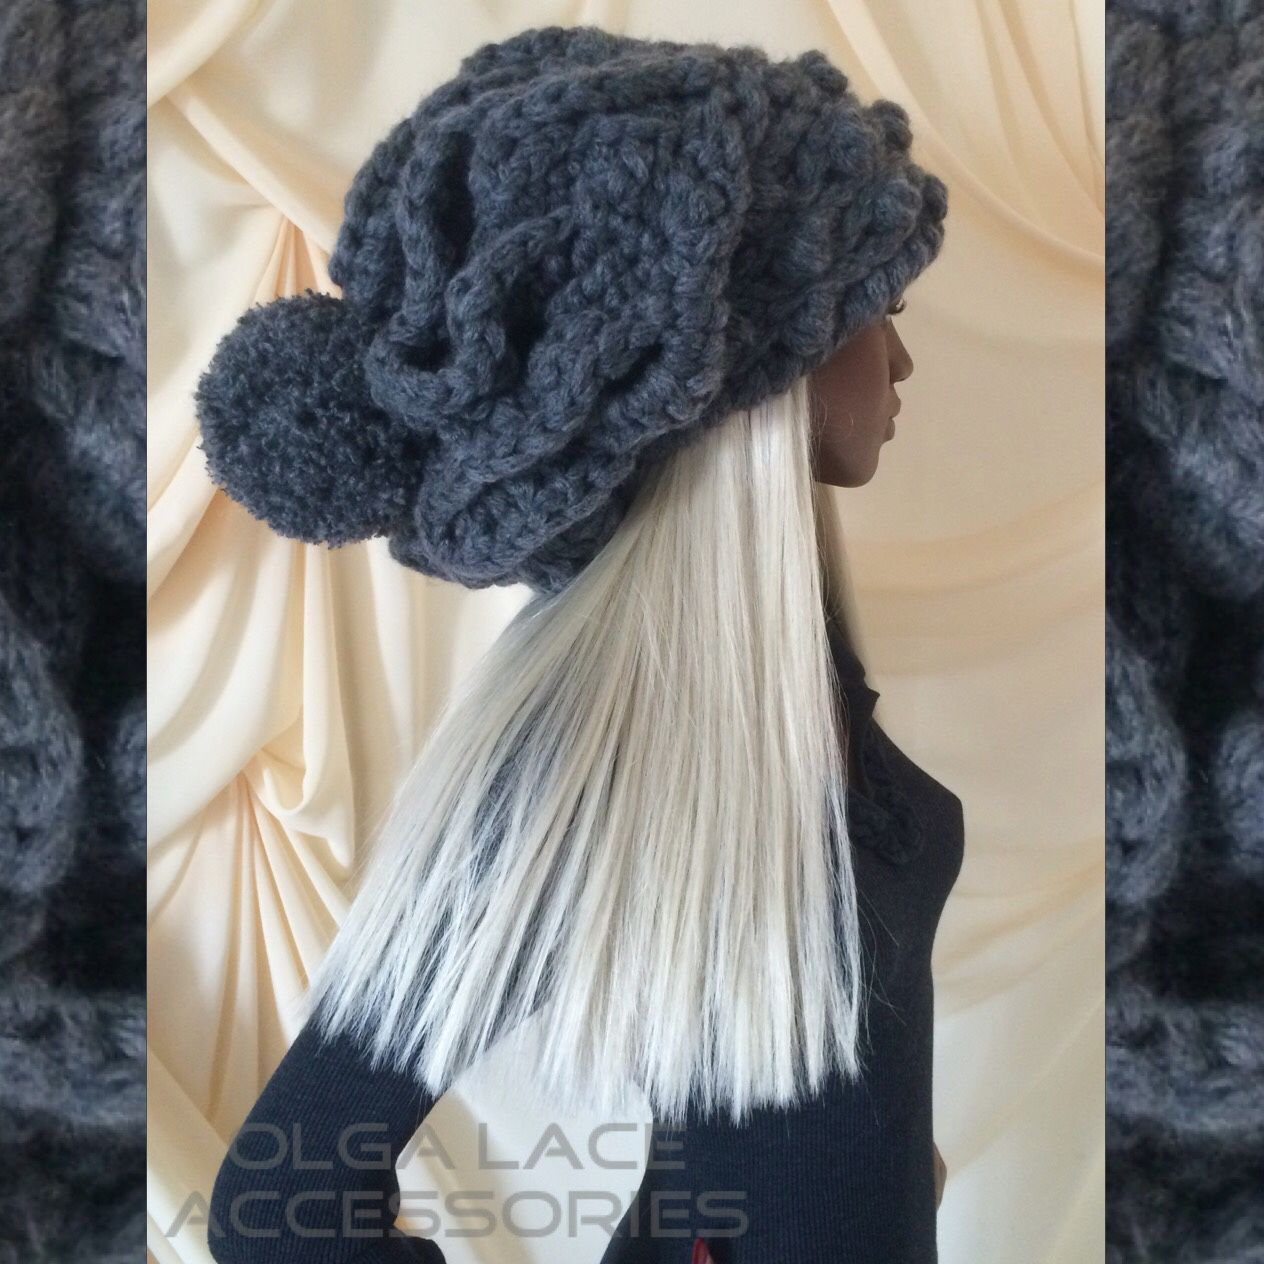 Mega volume knitted hat 'Luxury' from Olga Lace, Caps, Moscow, Фото №1